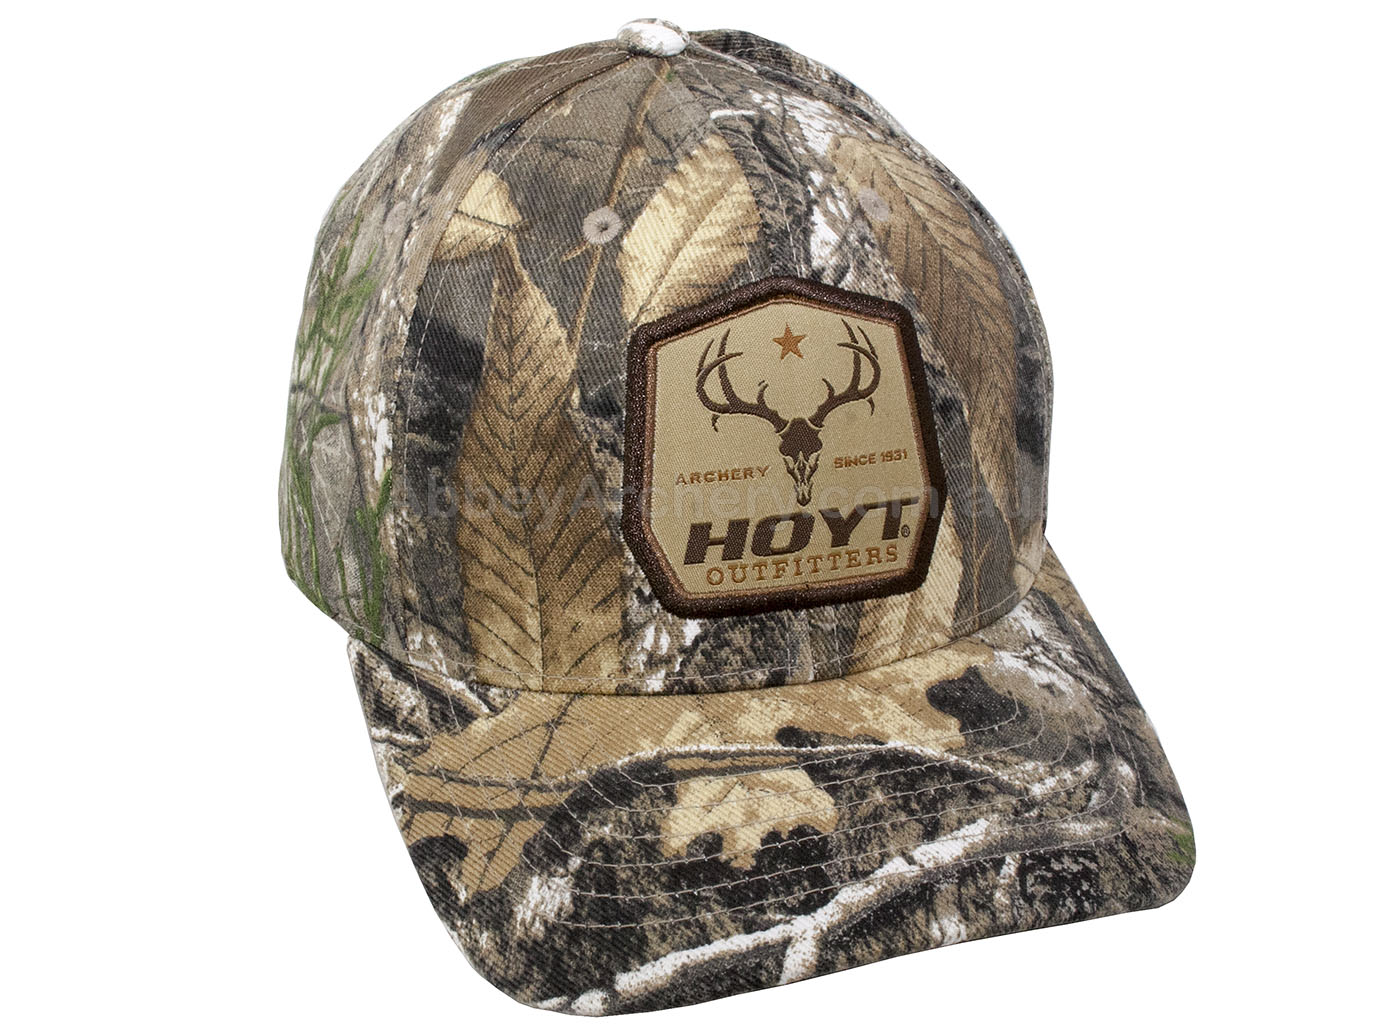 Hoyt Realtree Edge Outfitter Cap large.jpg 762a9445d19